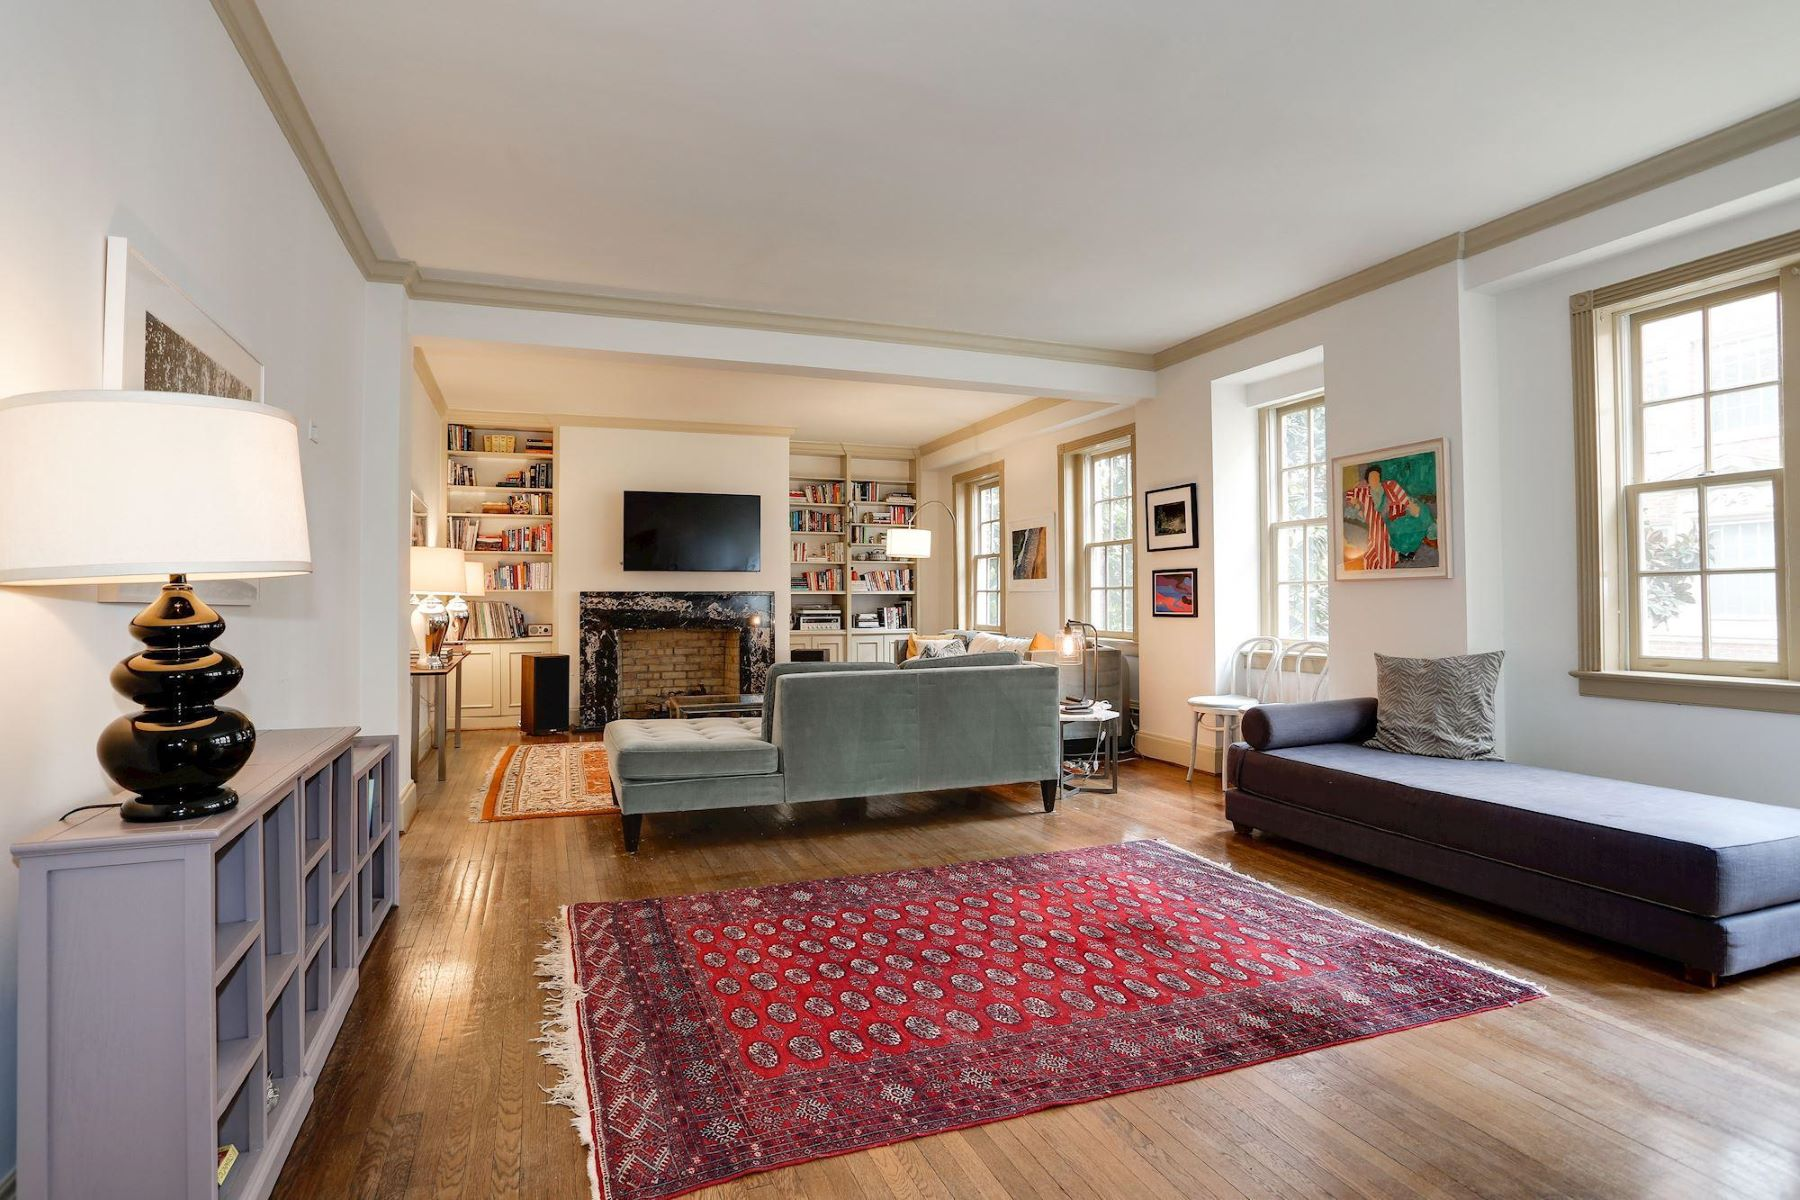 for Sale at 1661 Crescent Pl NW #309/209 Washington, District Of Columbia 20009 United States